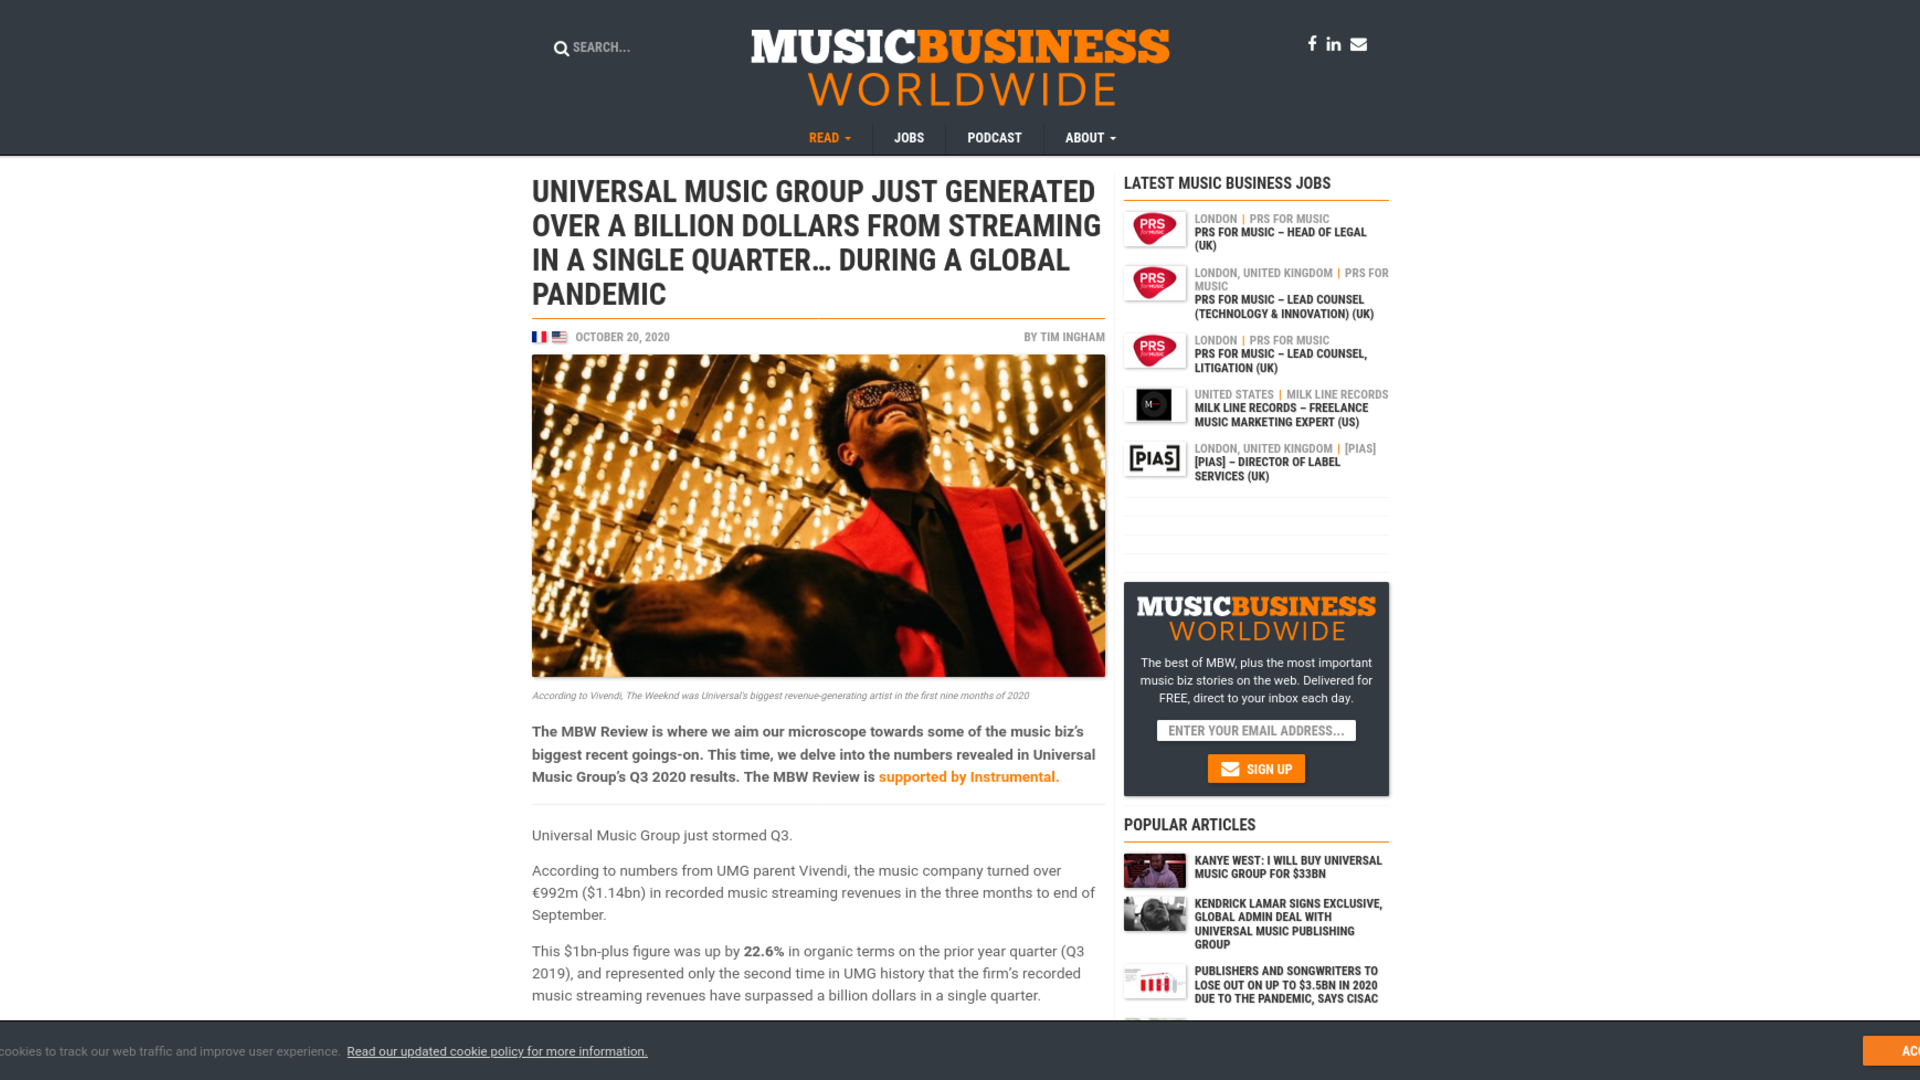 Fairness Rocks News Universal Music Group just generated over a billion dollars from streaming in a single quarter… during a global pandemic